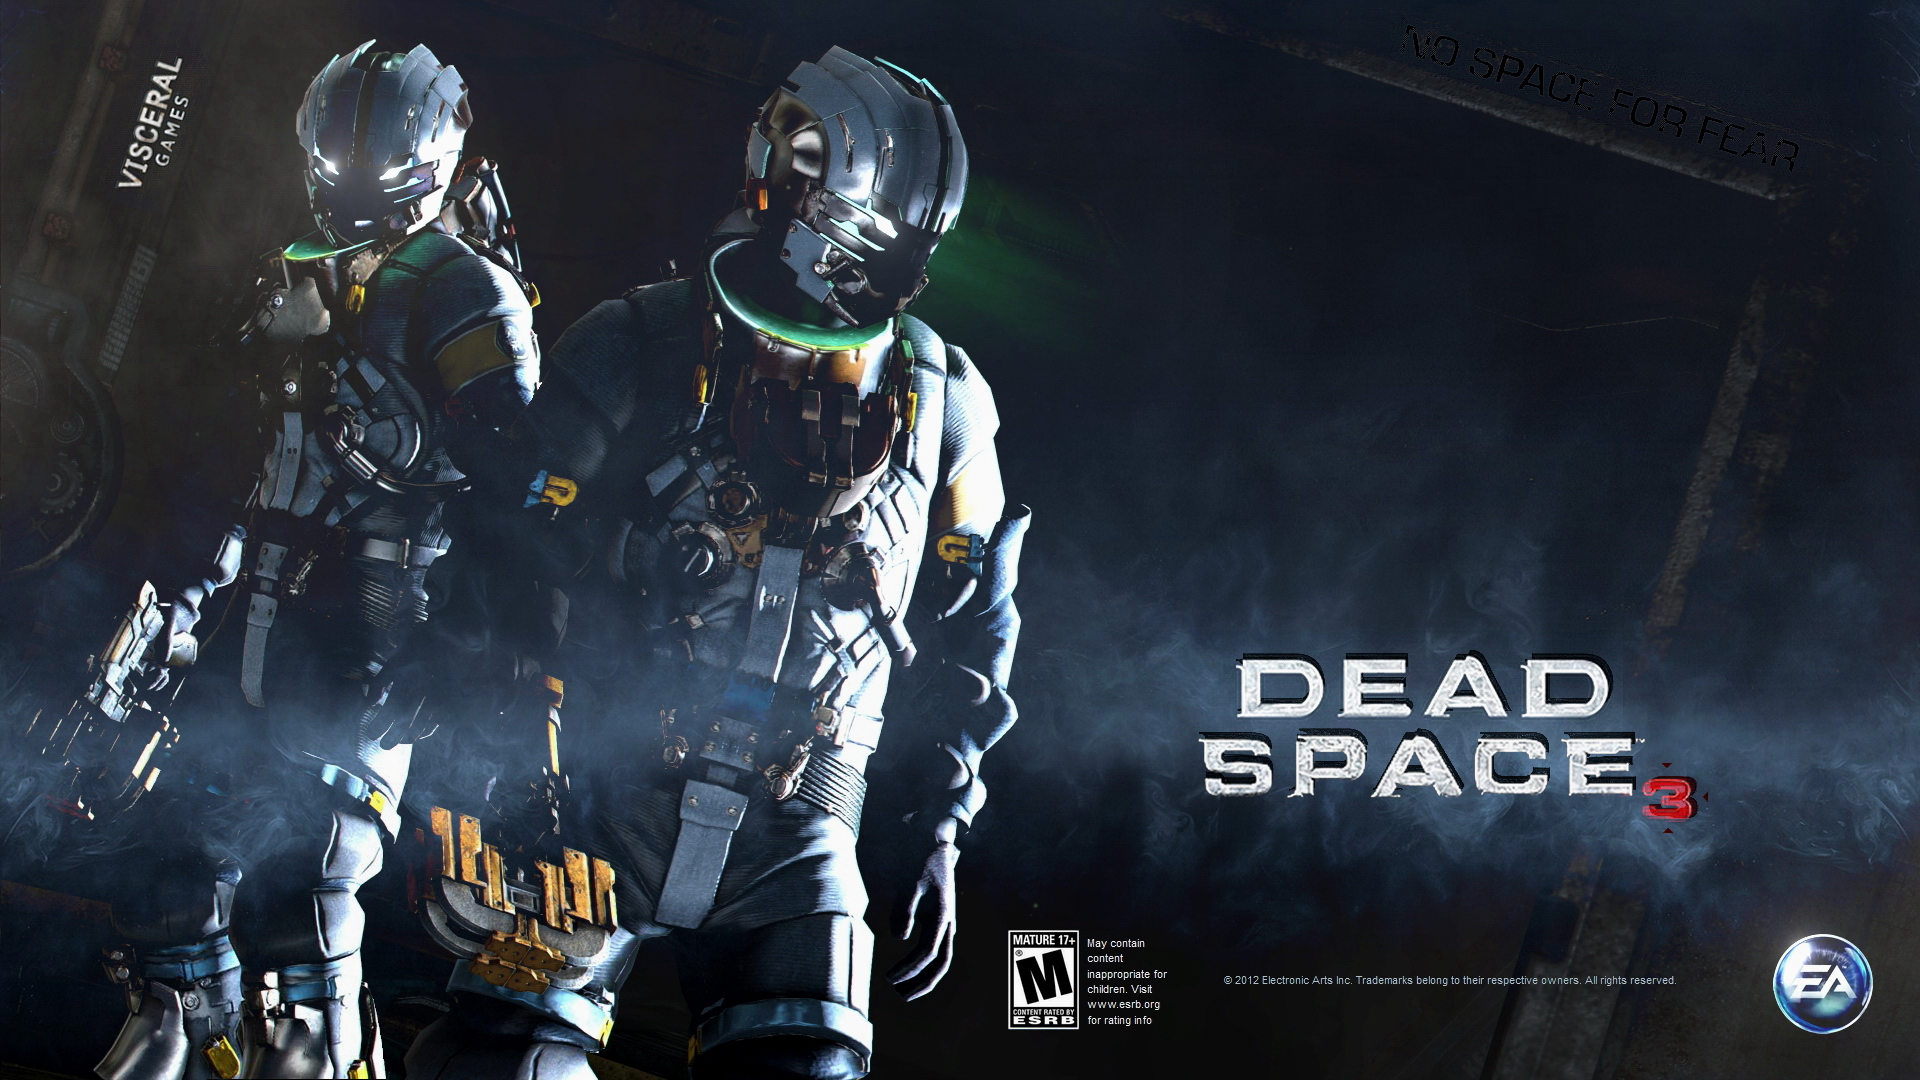 Dead Space 3 Game 2013 Wallpapers HD Wallpapers 1920x1080